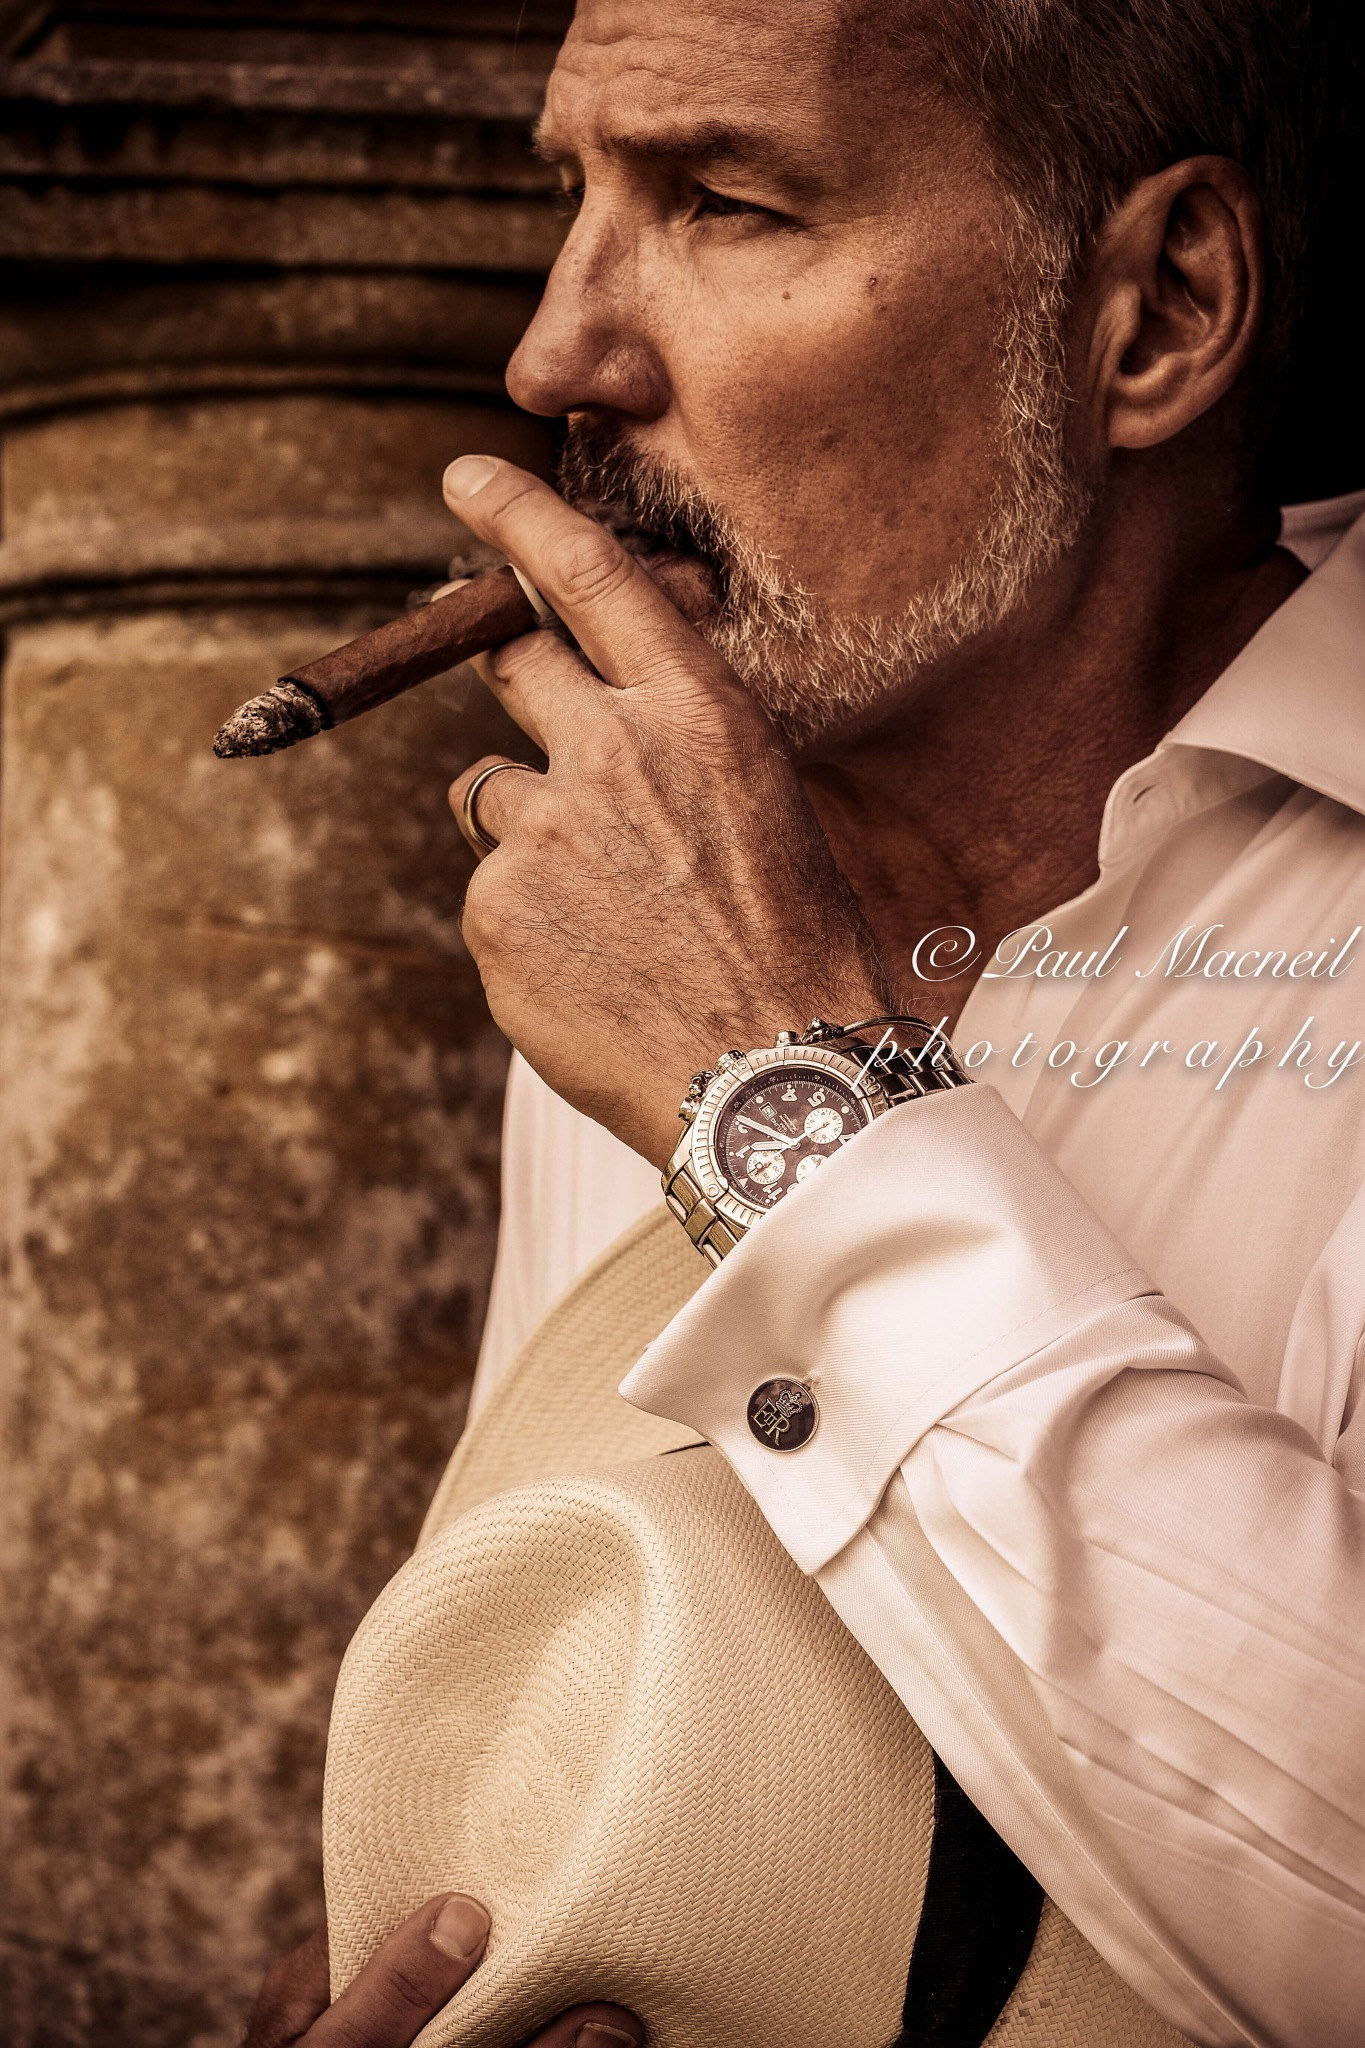 man with cigar by Paulomac